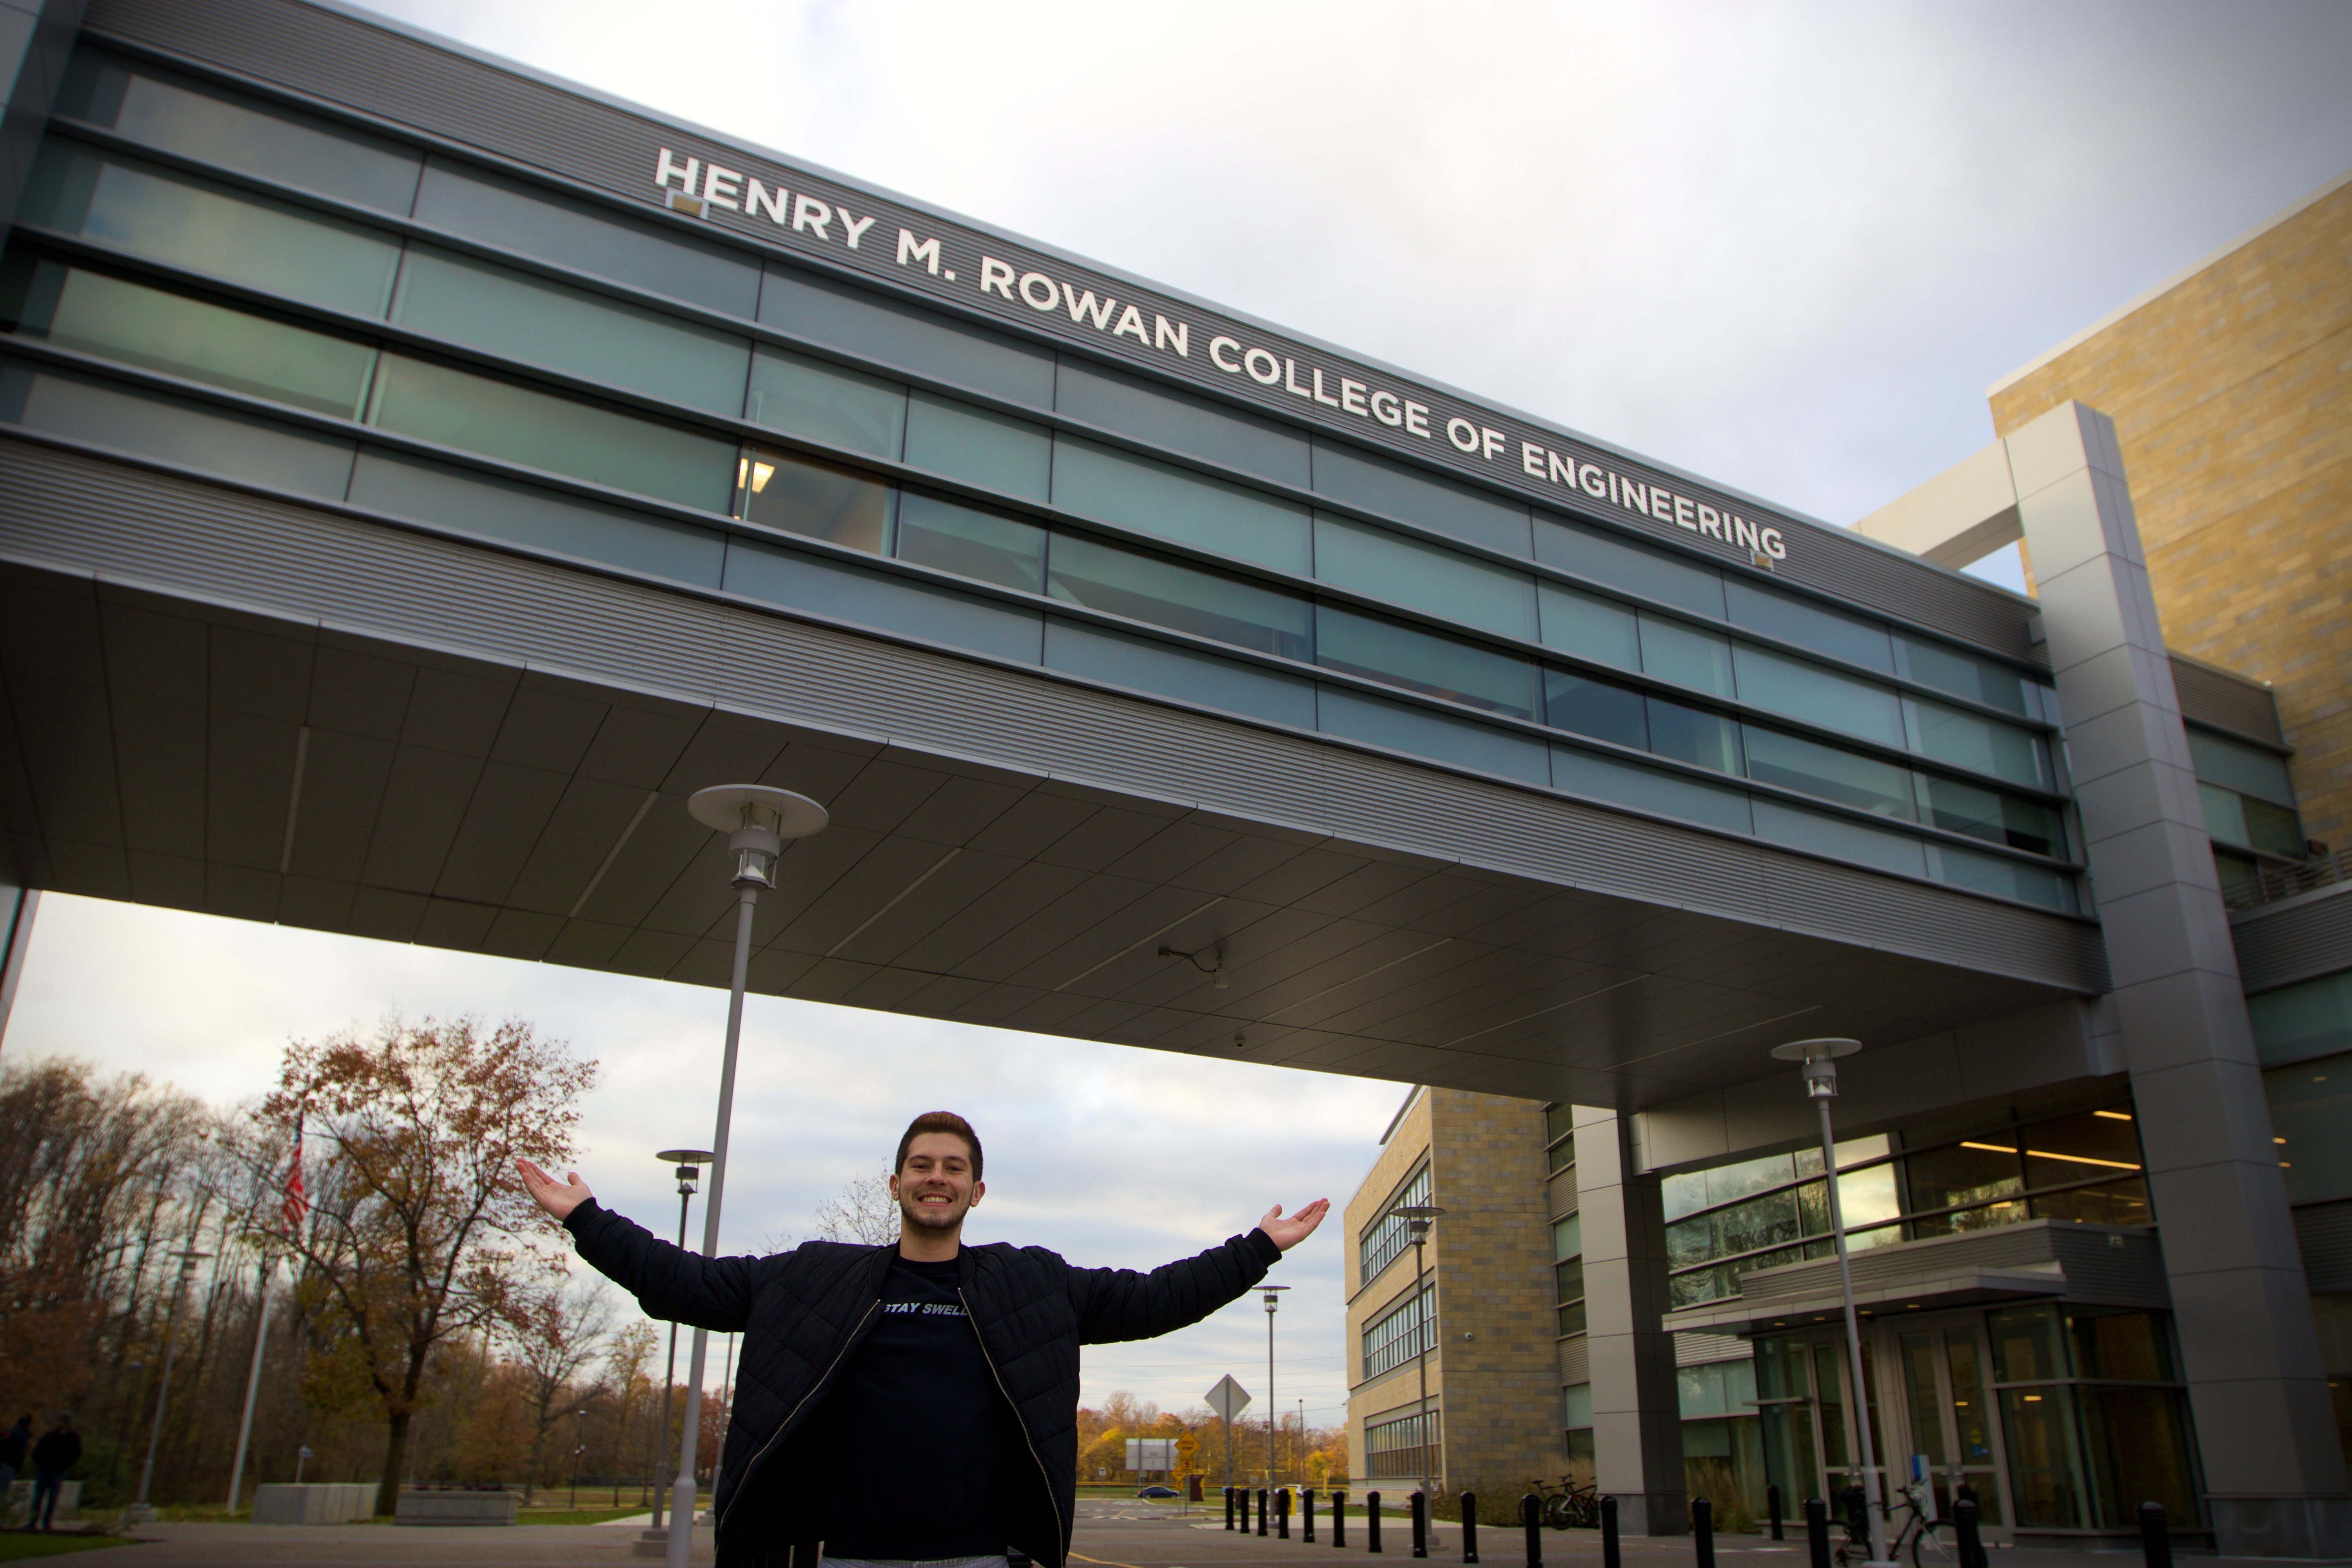 Joe proudly poses in front of the Henry M. Rowan College of Engineering building.